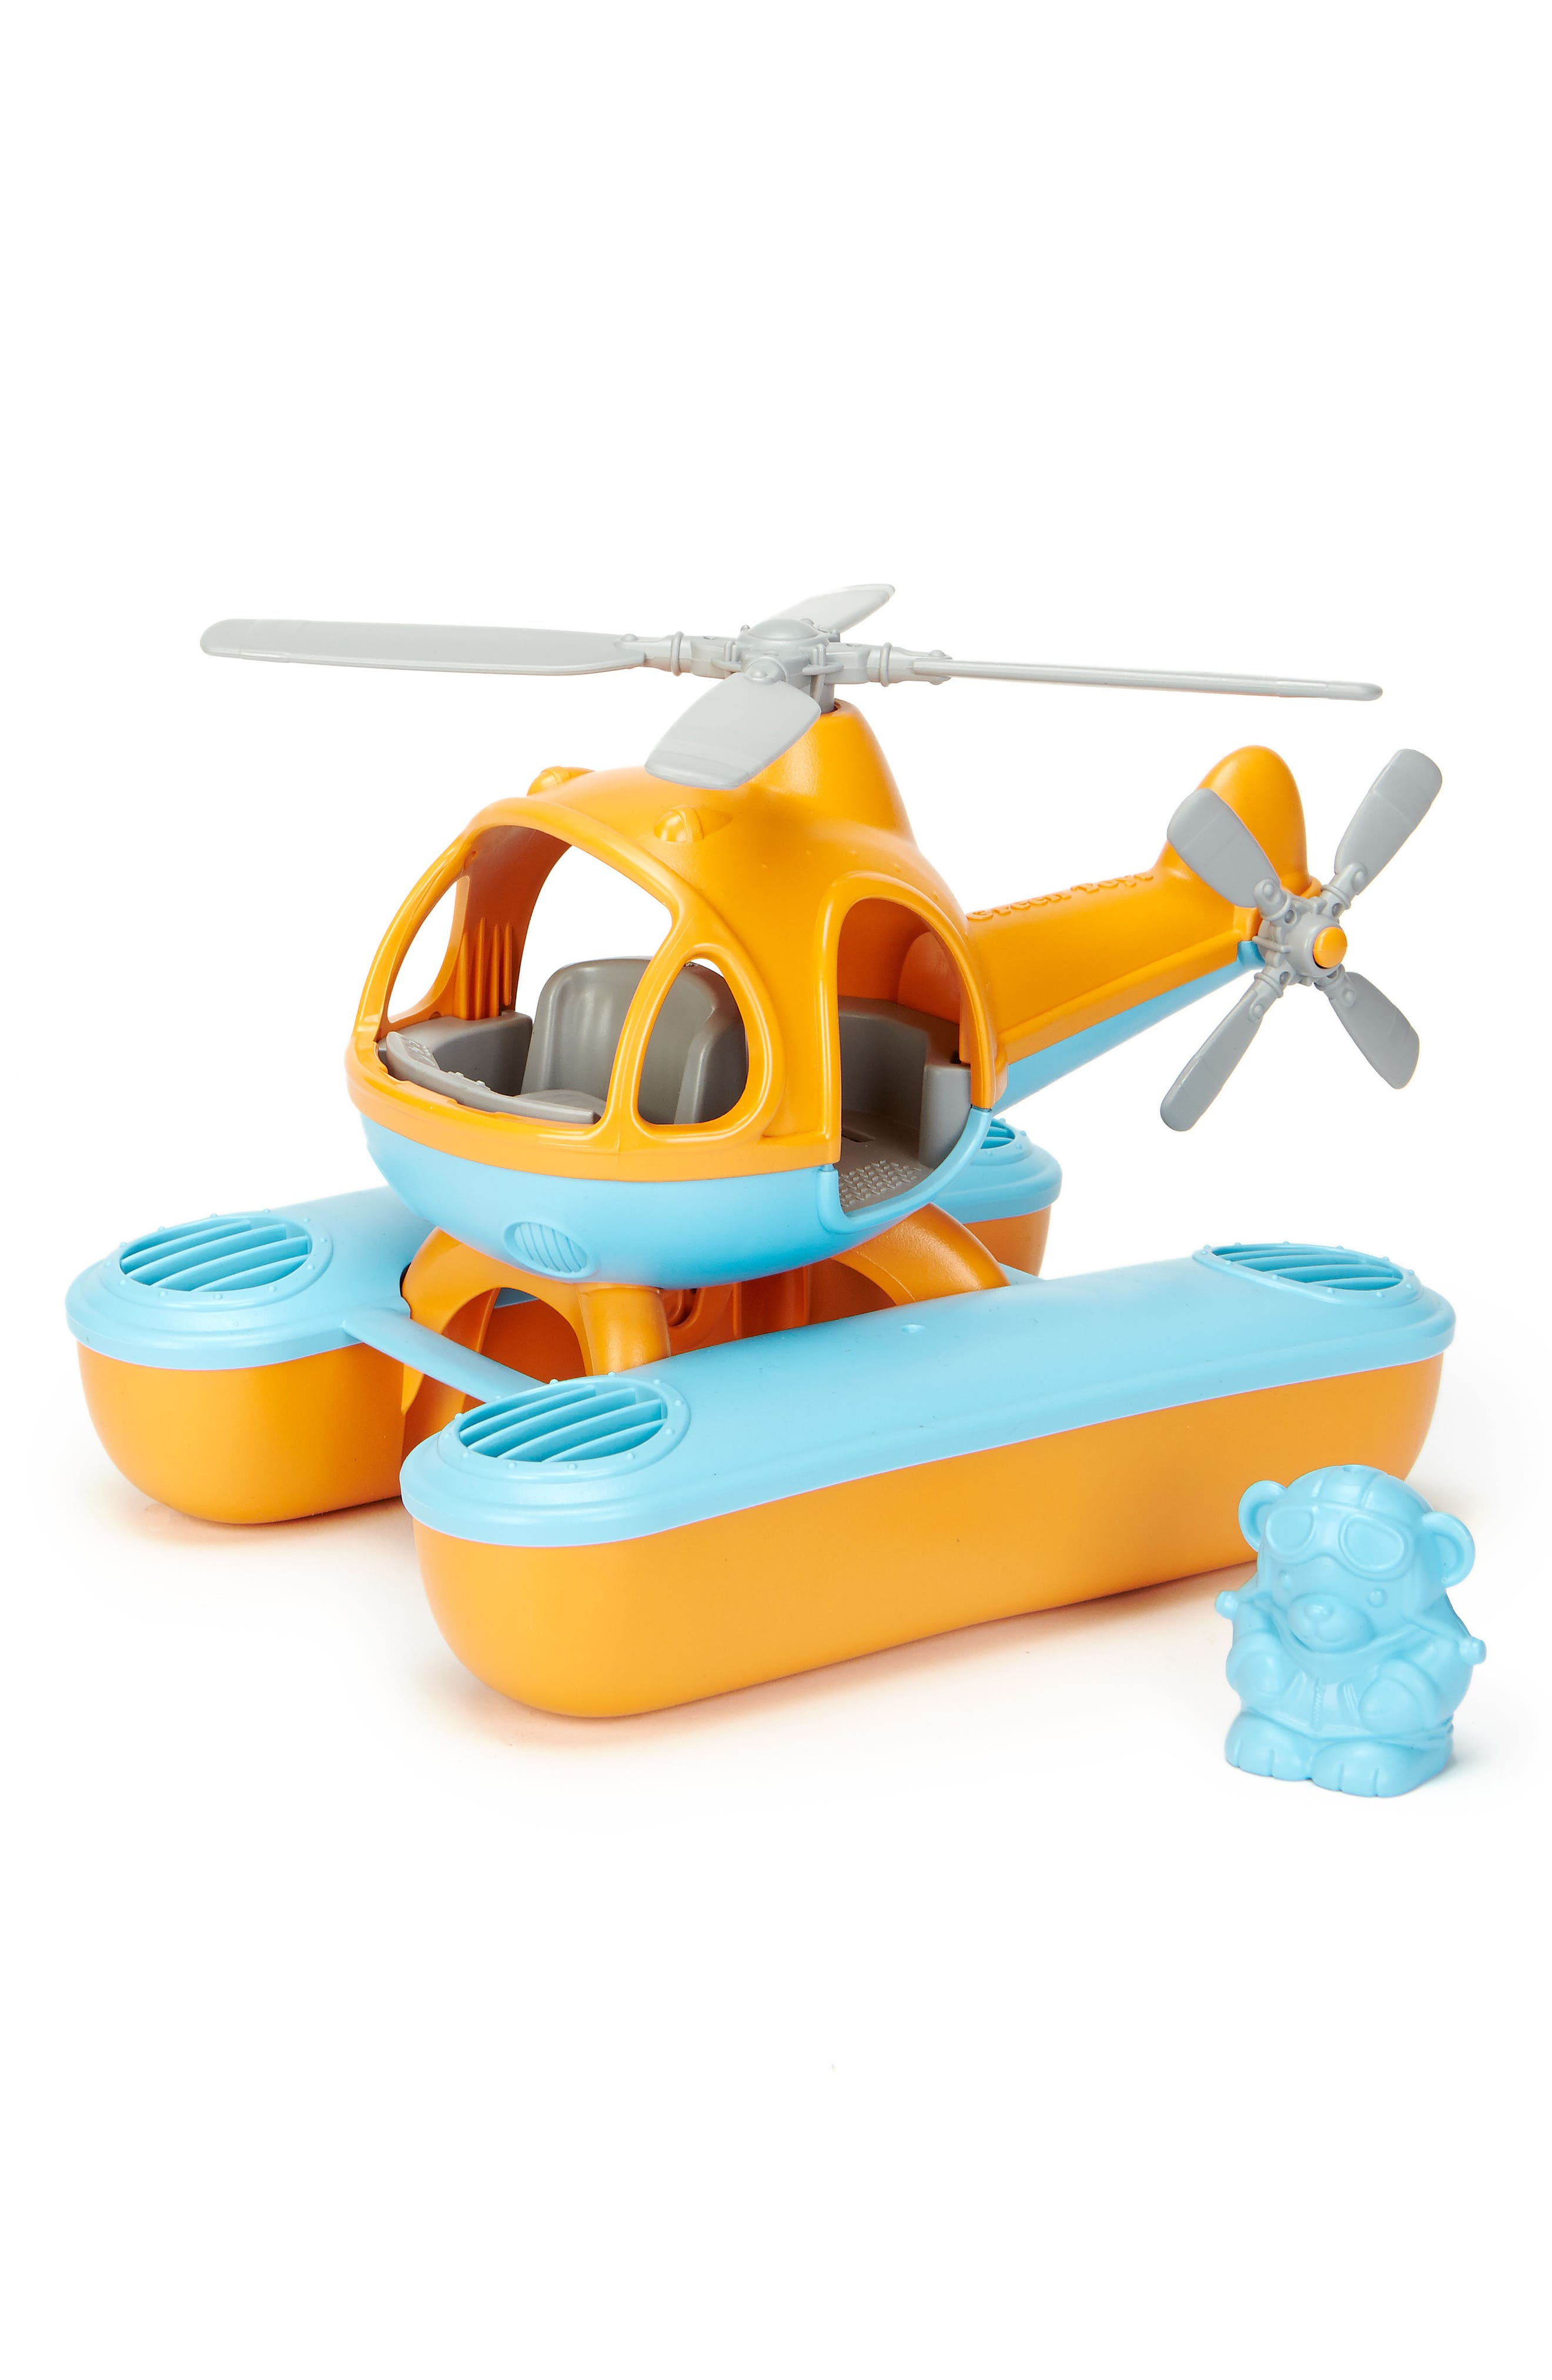 Two-Piece Seacopter Toy,                         Main,                         color, Orange